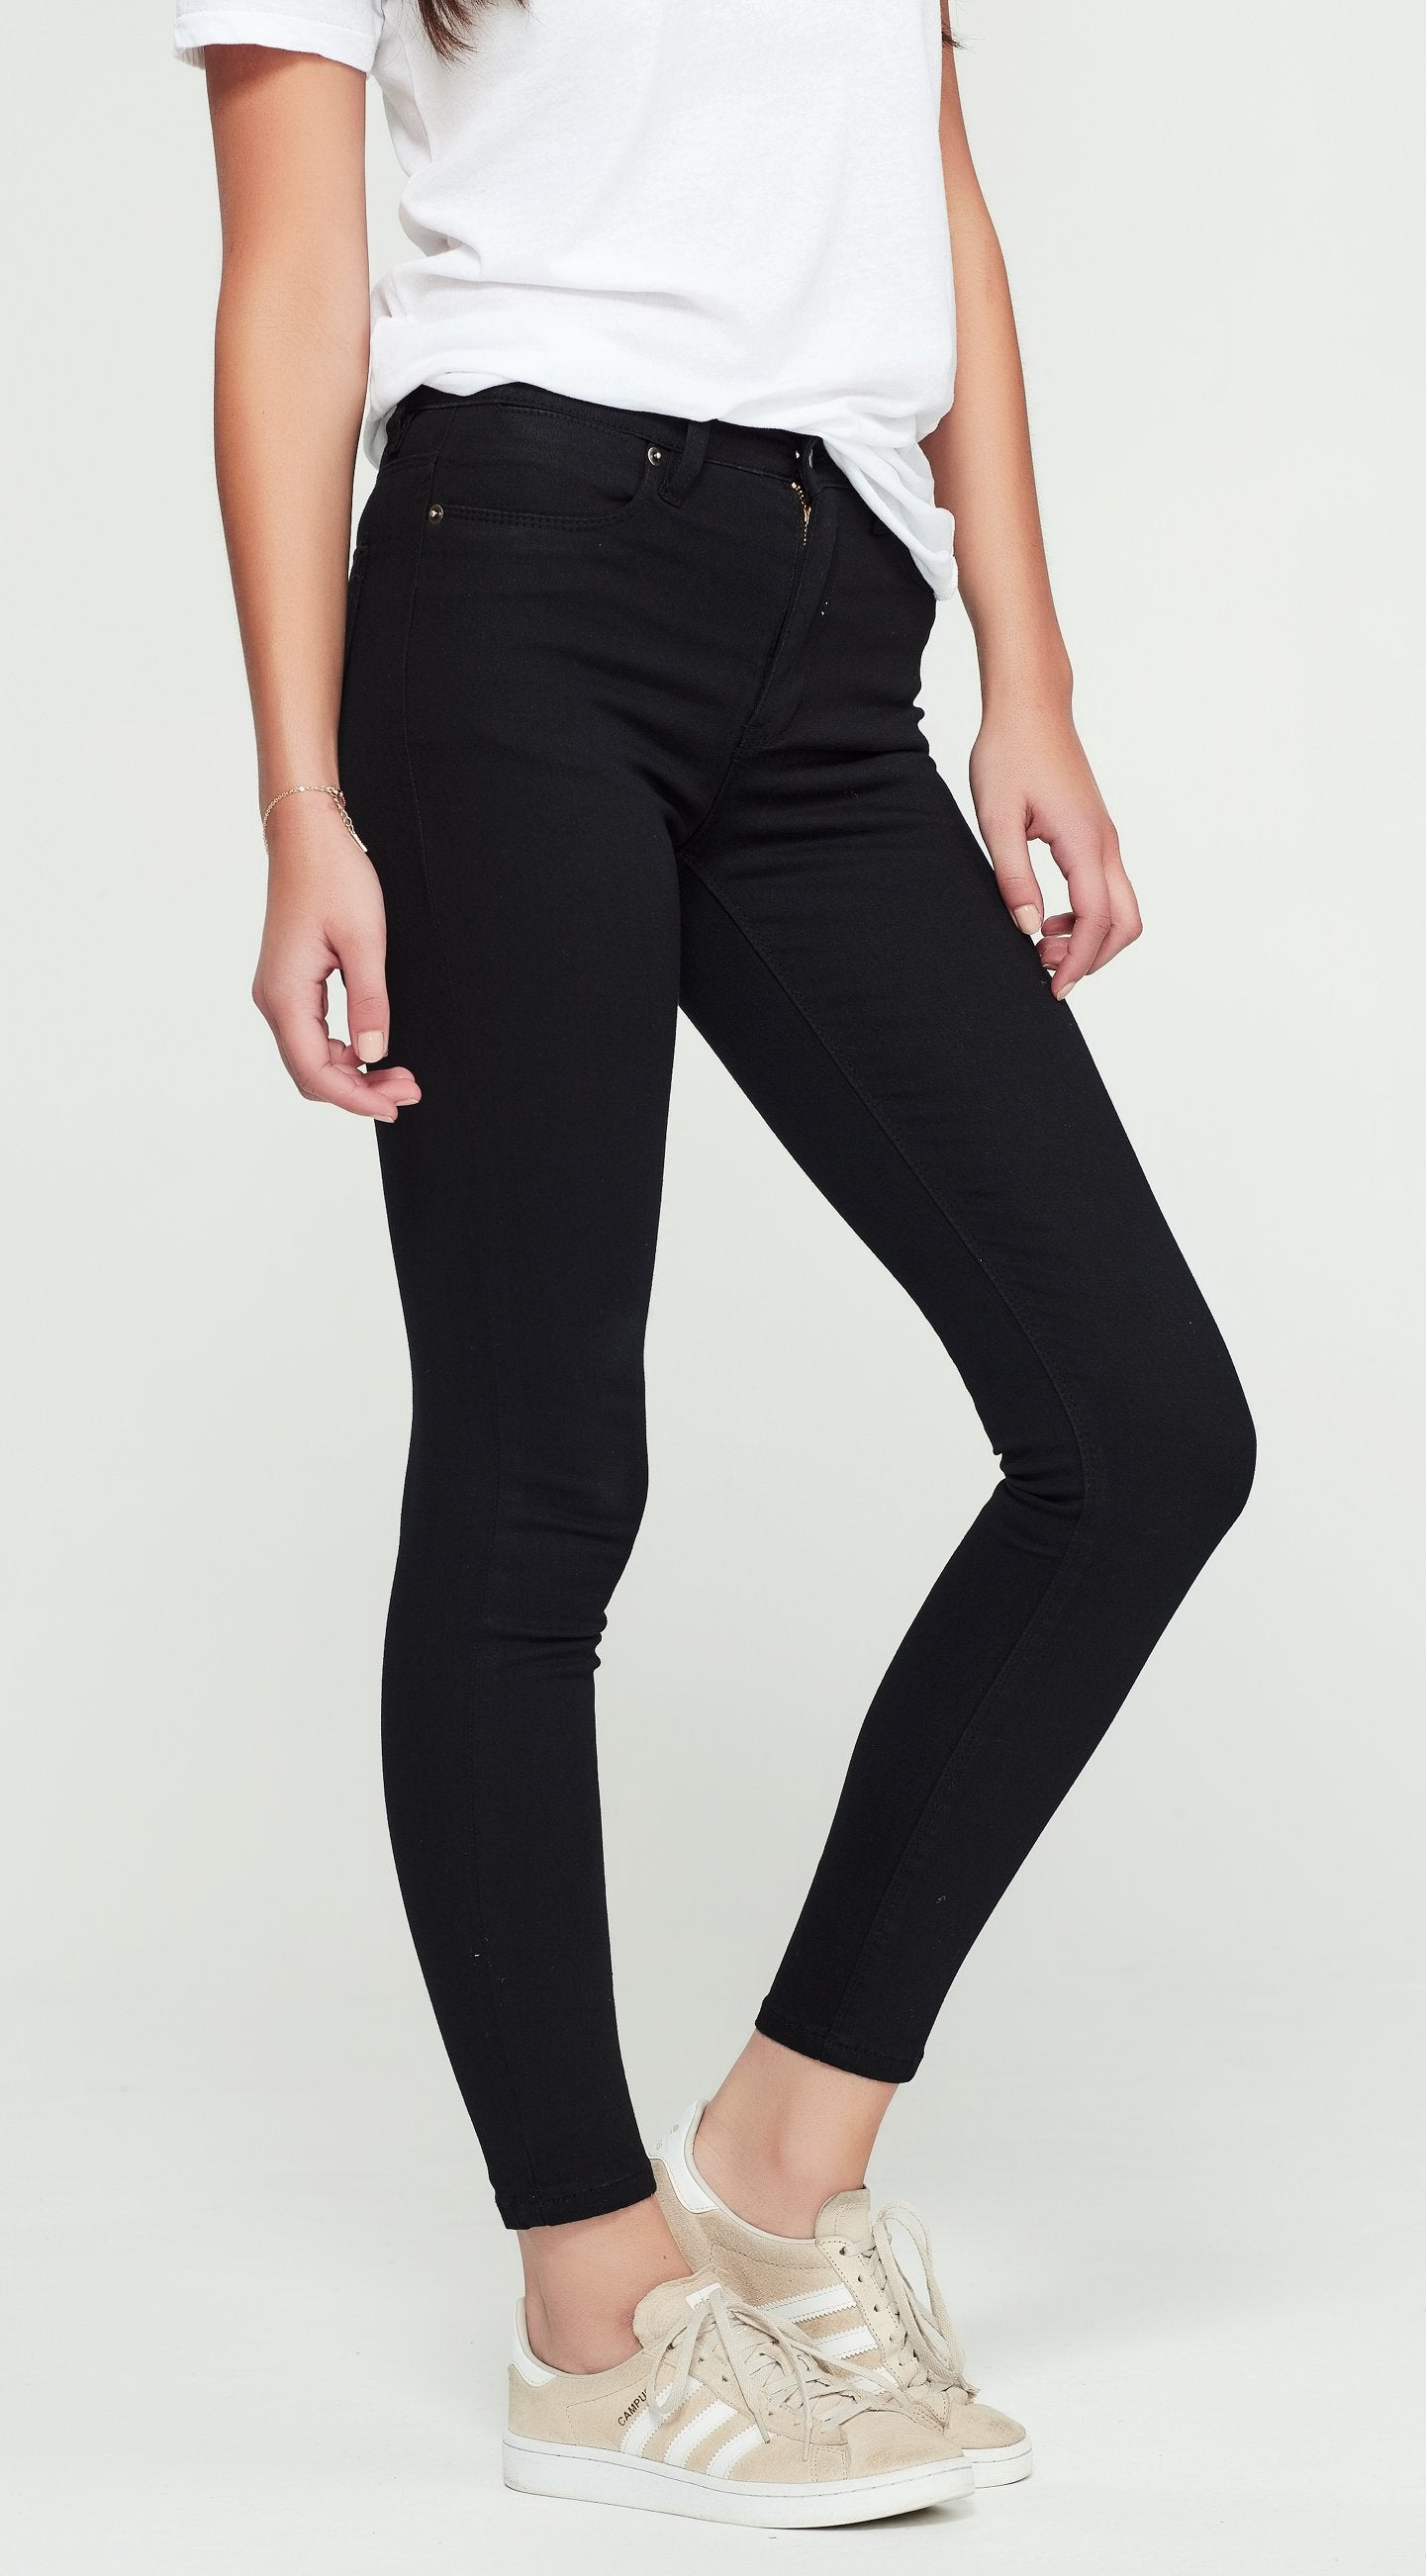 JUNKFOOD VERONICA HIGH WAIST SKINNY JEAN -  BLACK